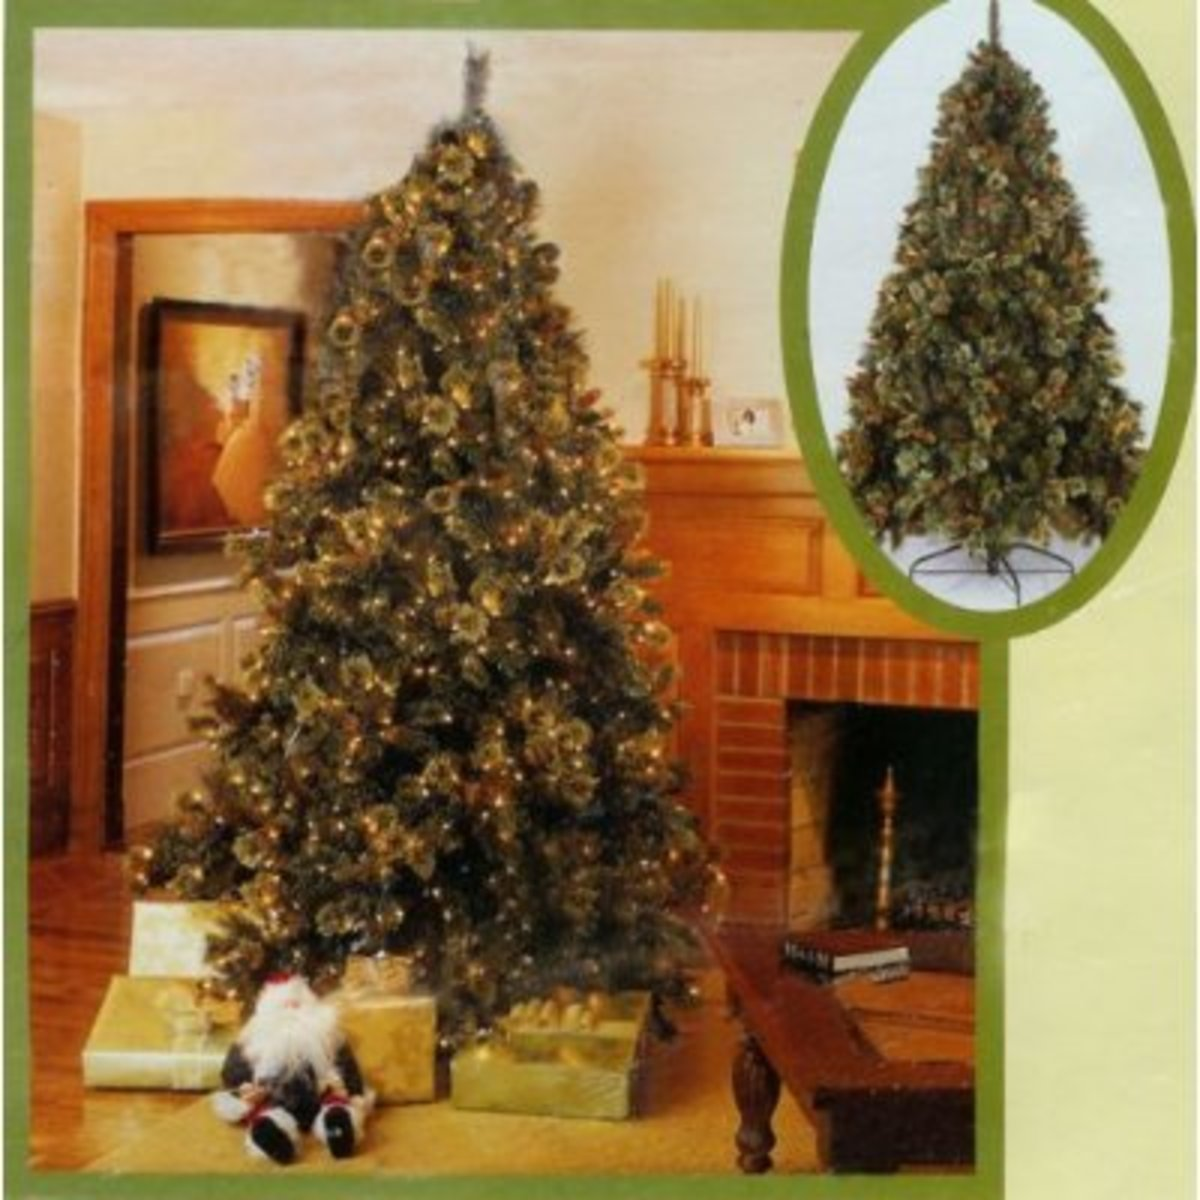 Where To Buy A Pre Lit Christmas Tree: Buy A Beautiful Pre Lit Christmas Tree At A Discount